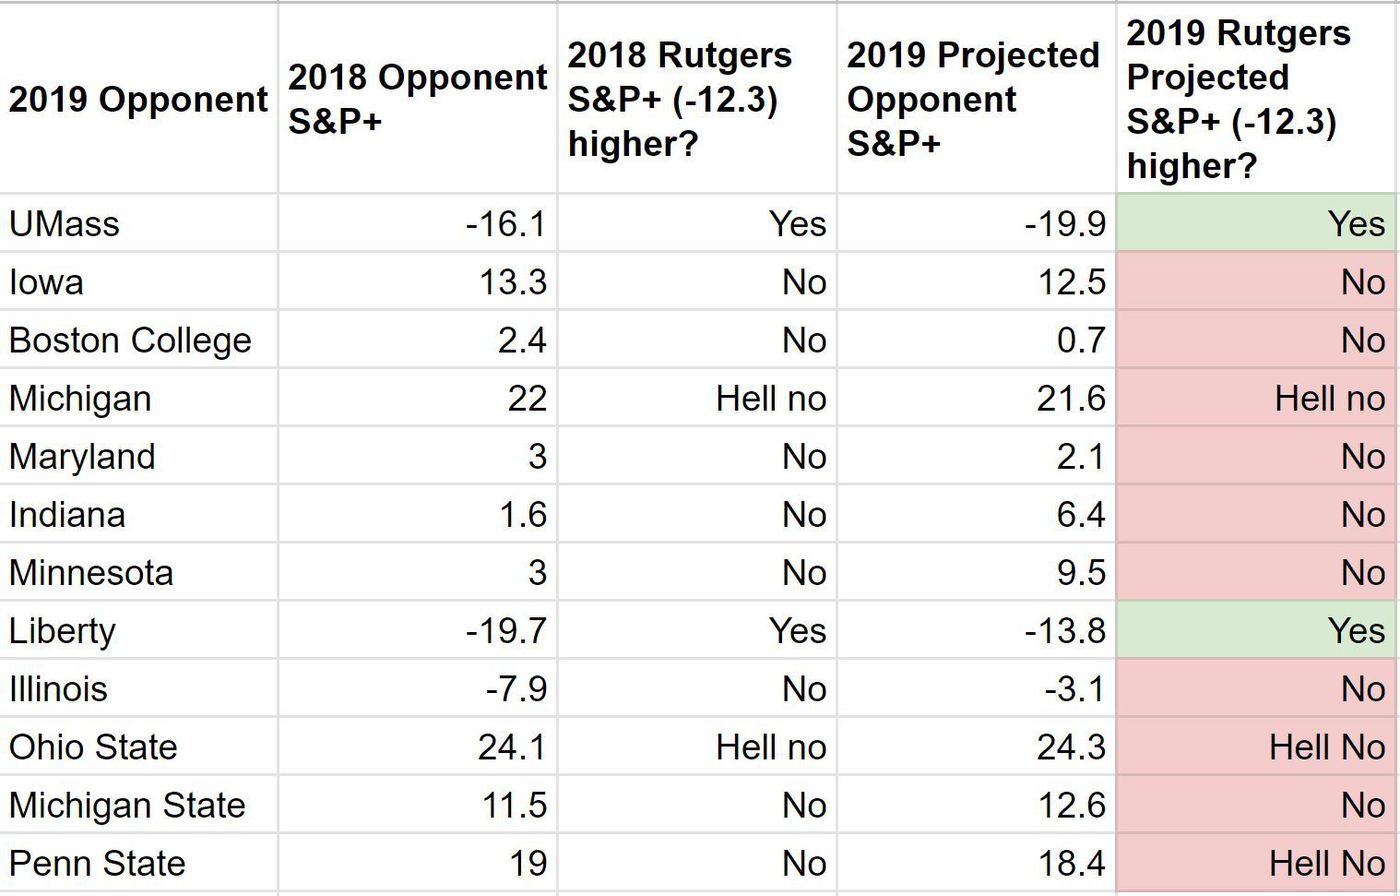 Rutgers Football 2019 Preview: Schedule, S&P+, and Record